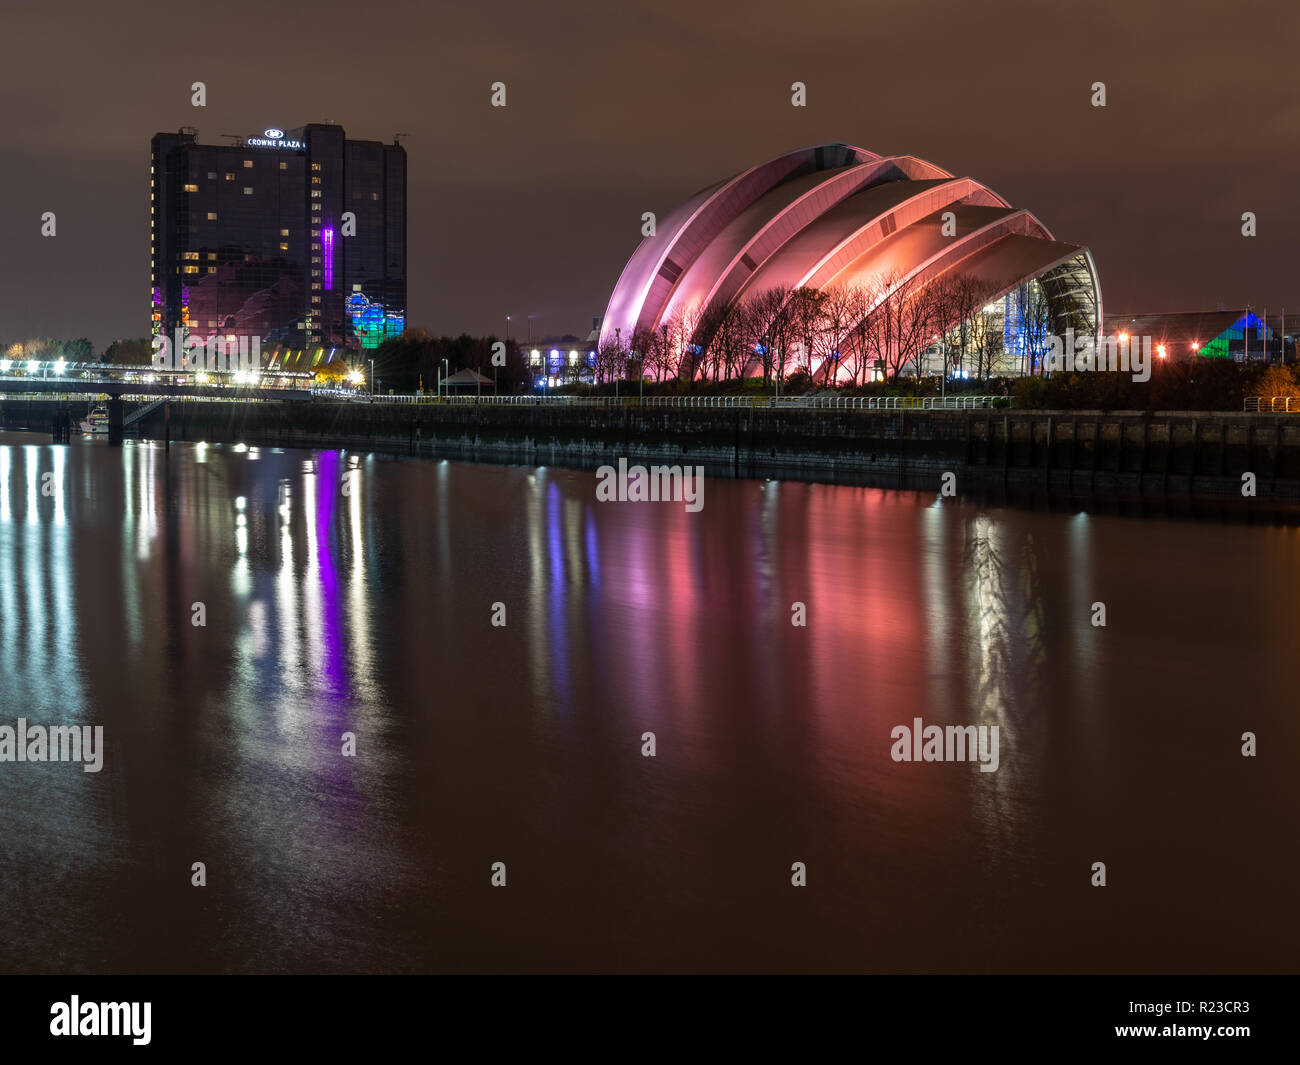 Glasgow, Scotland, UK - November 6, 2018: The modern Armadillo Auditorium and Crowne Plaza hotel buildings stand on the banks of the River Clyde at th - Stock Image